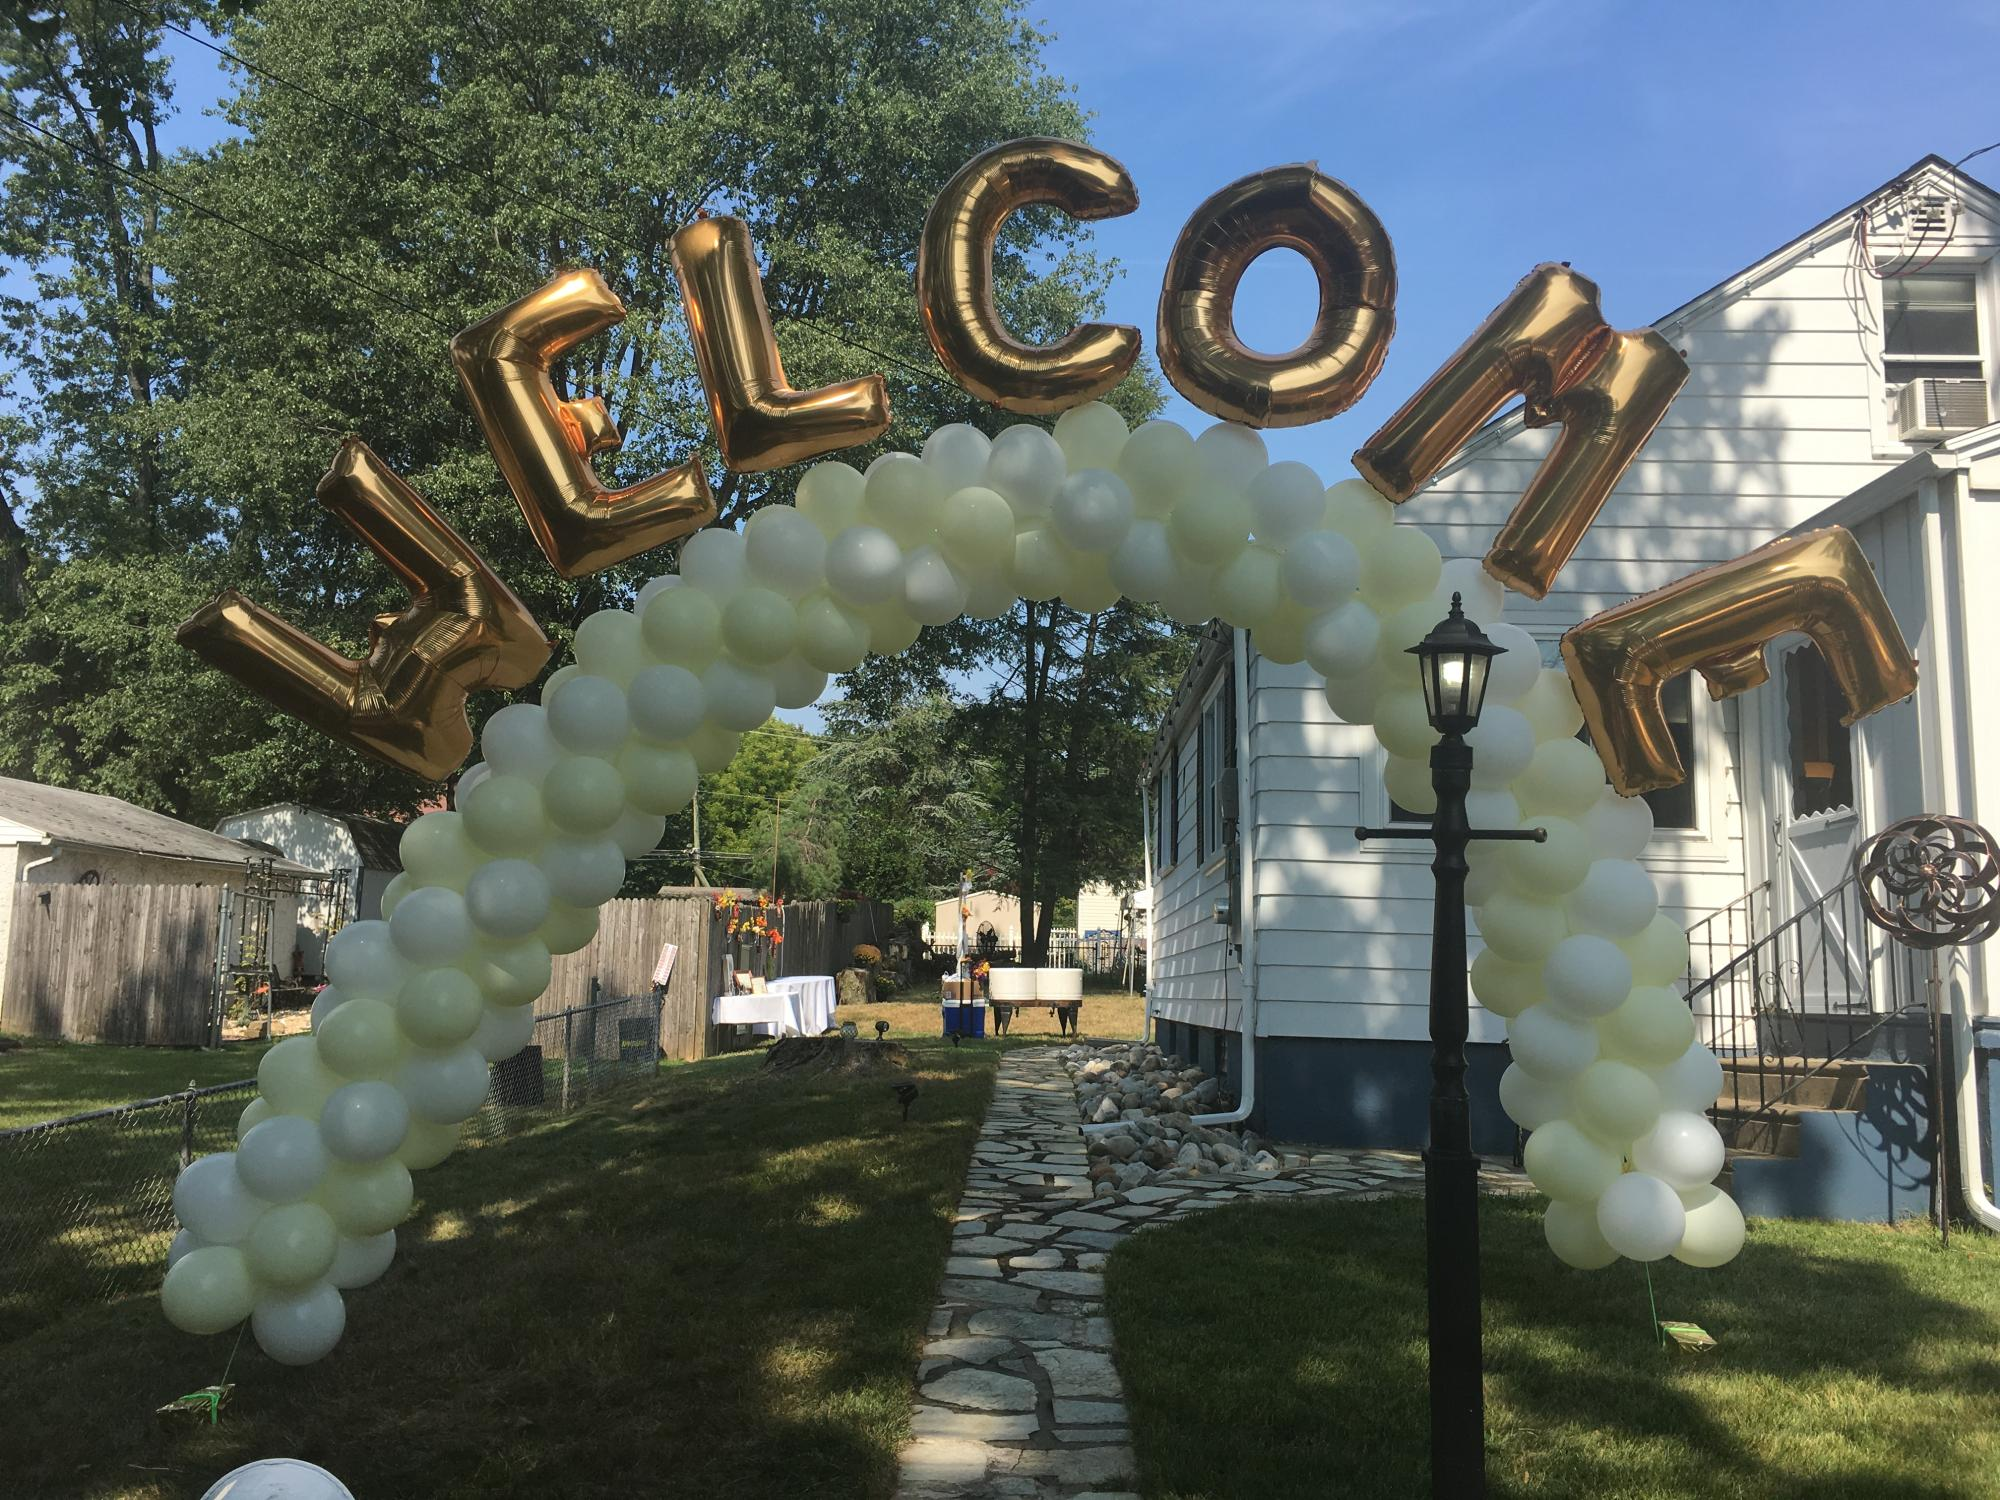 Balloon arch in New Jersey